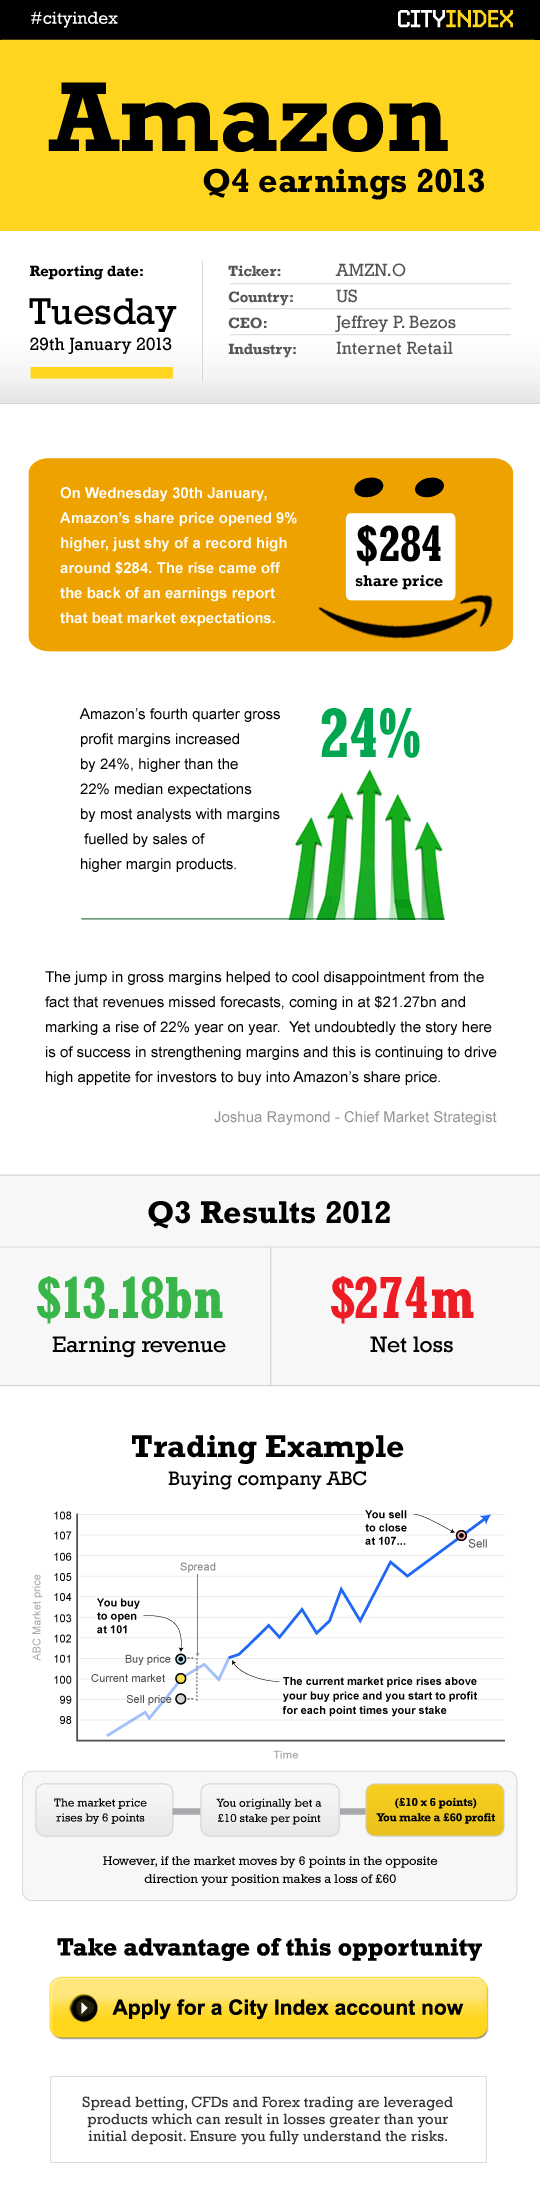 RealityPod - Amazon Earnings infographic